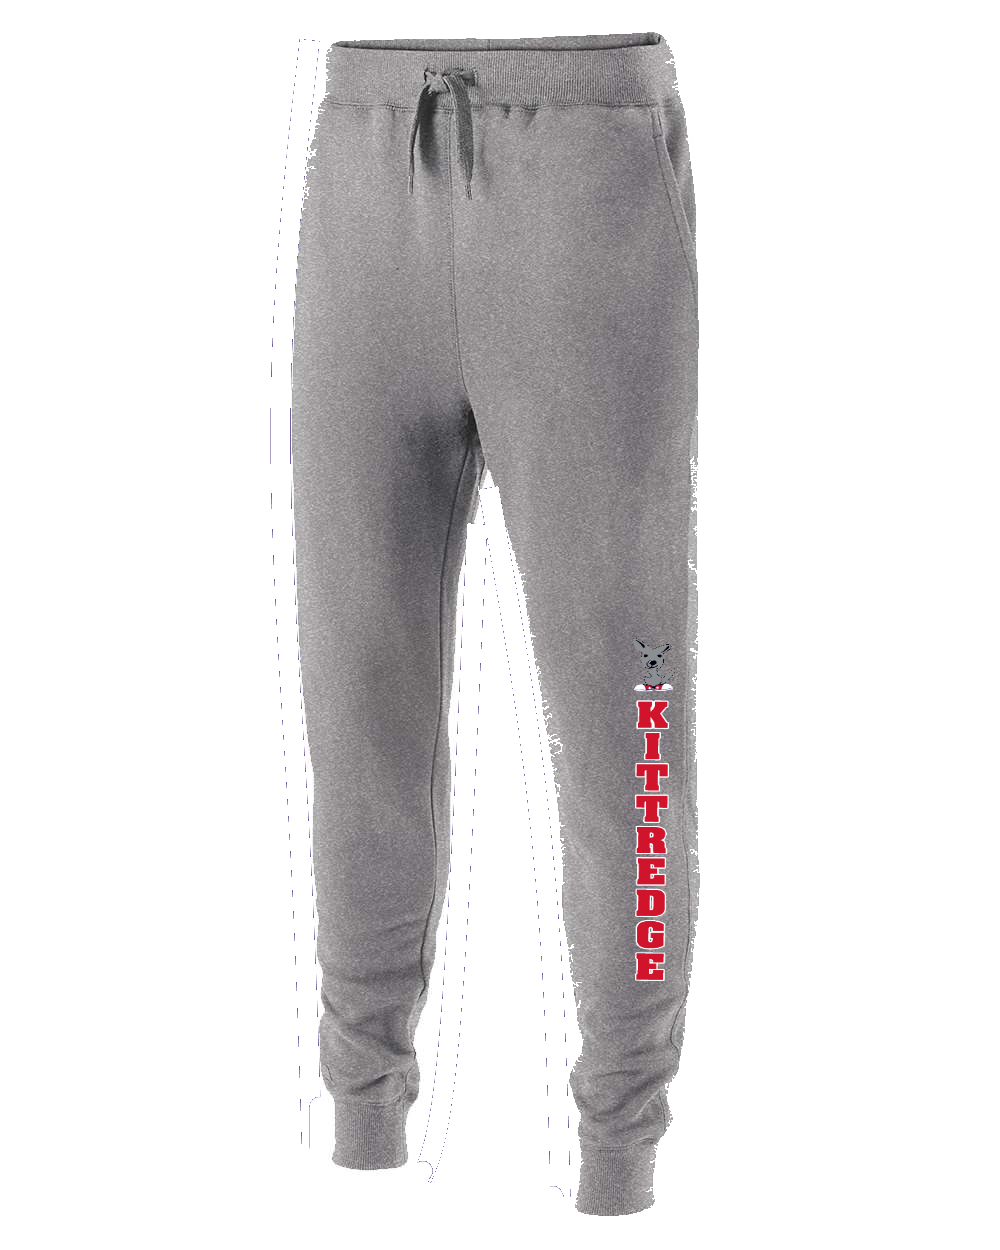 Kittredge Joggers (Youth sizes only)